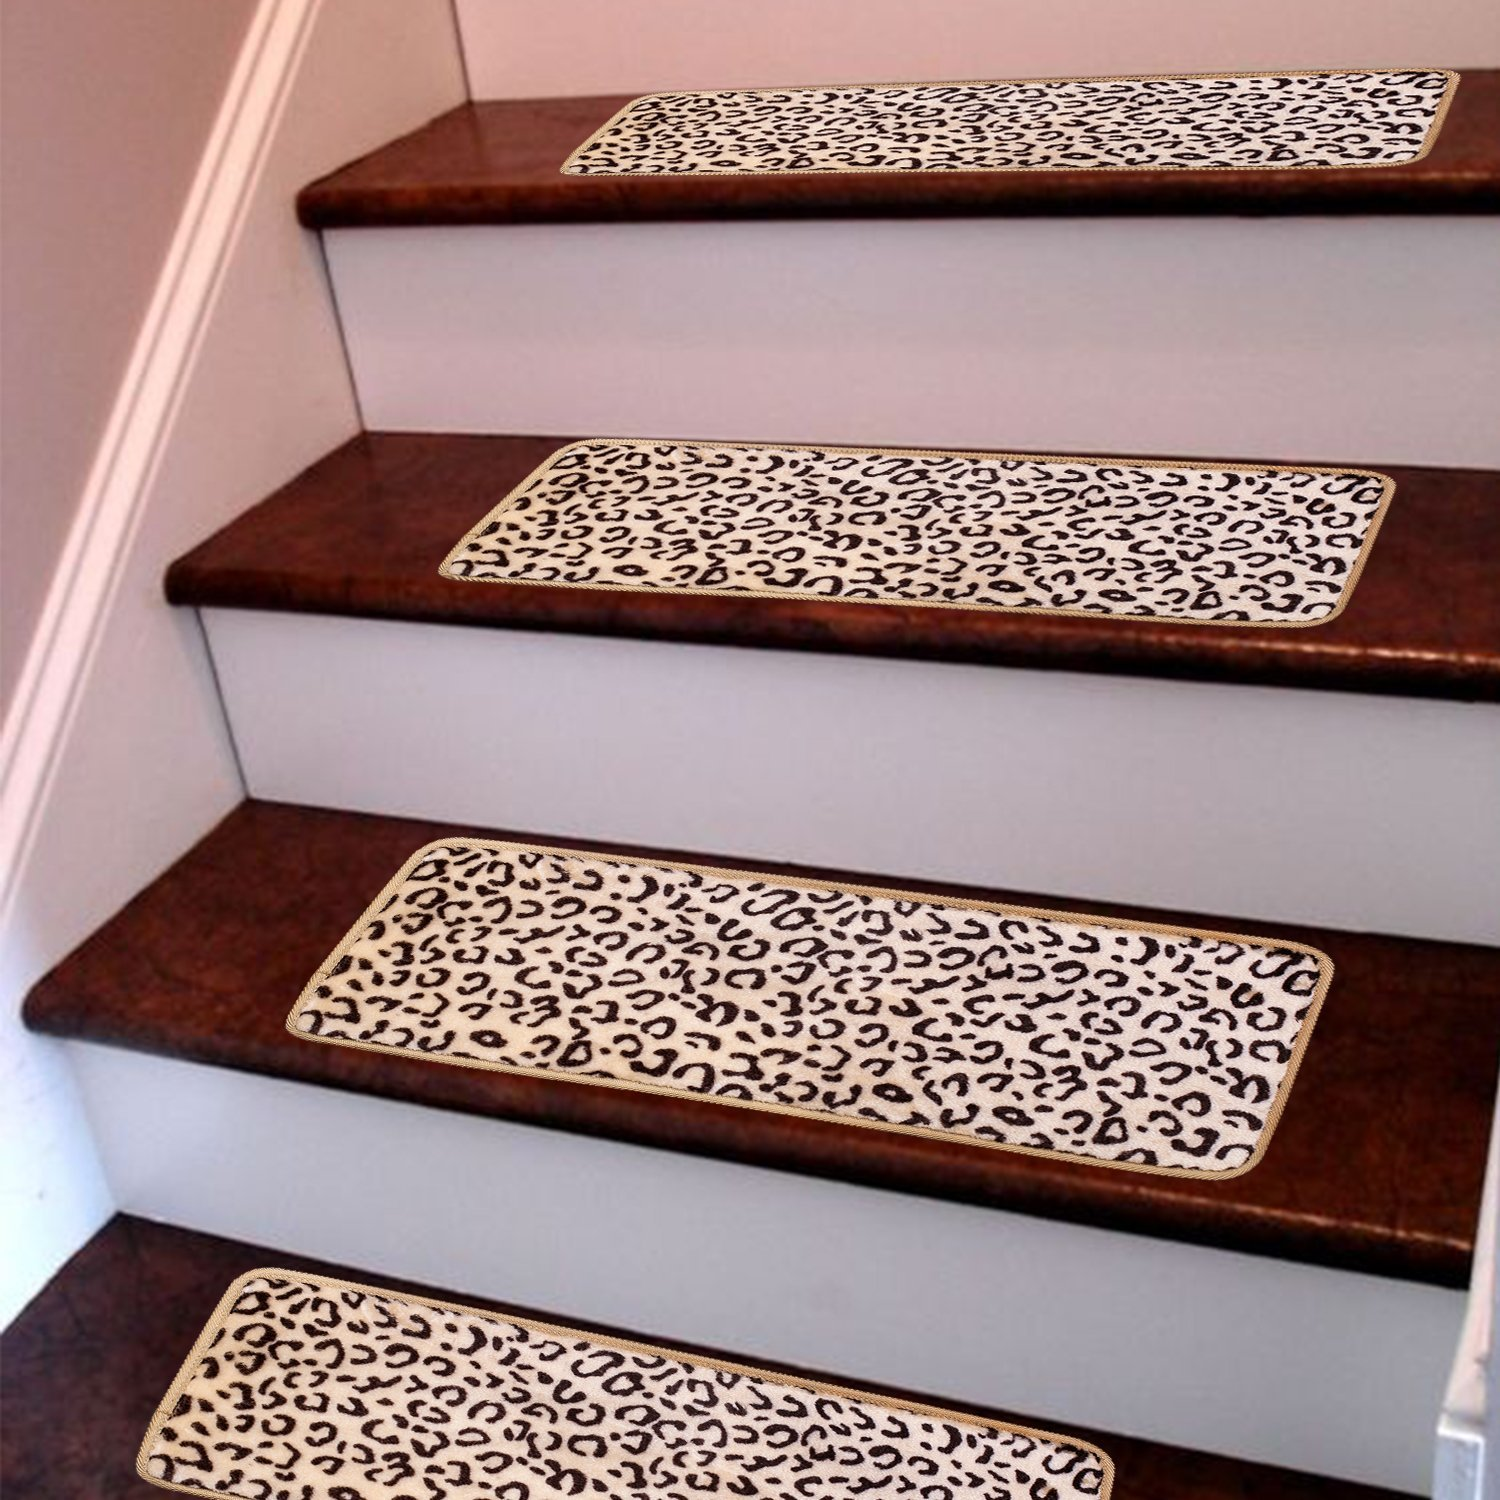 Removable Washable Step Floor Rugs for Stairs Seloom Stair Treads Carpet Non-Slip with Skid Resistant Rubber Backing Specialized for Indoor Wood Steps Pure Brown, Set of 13